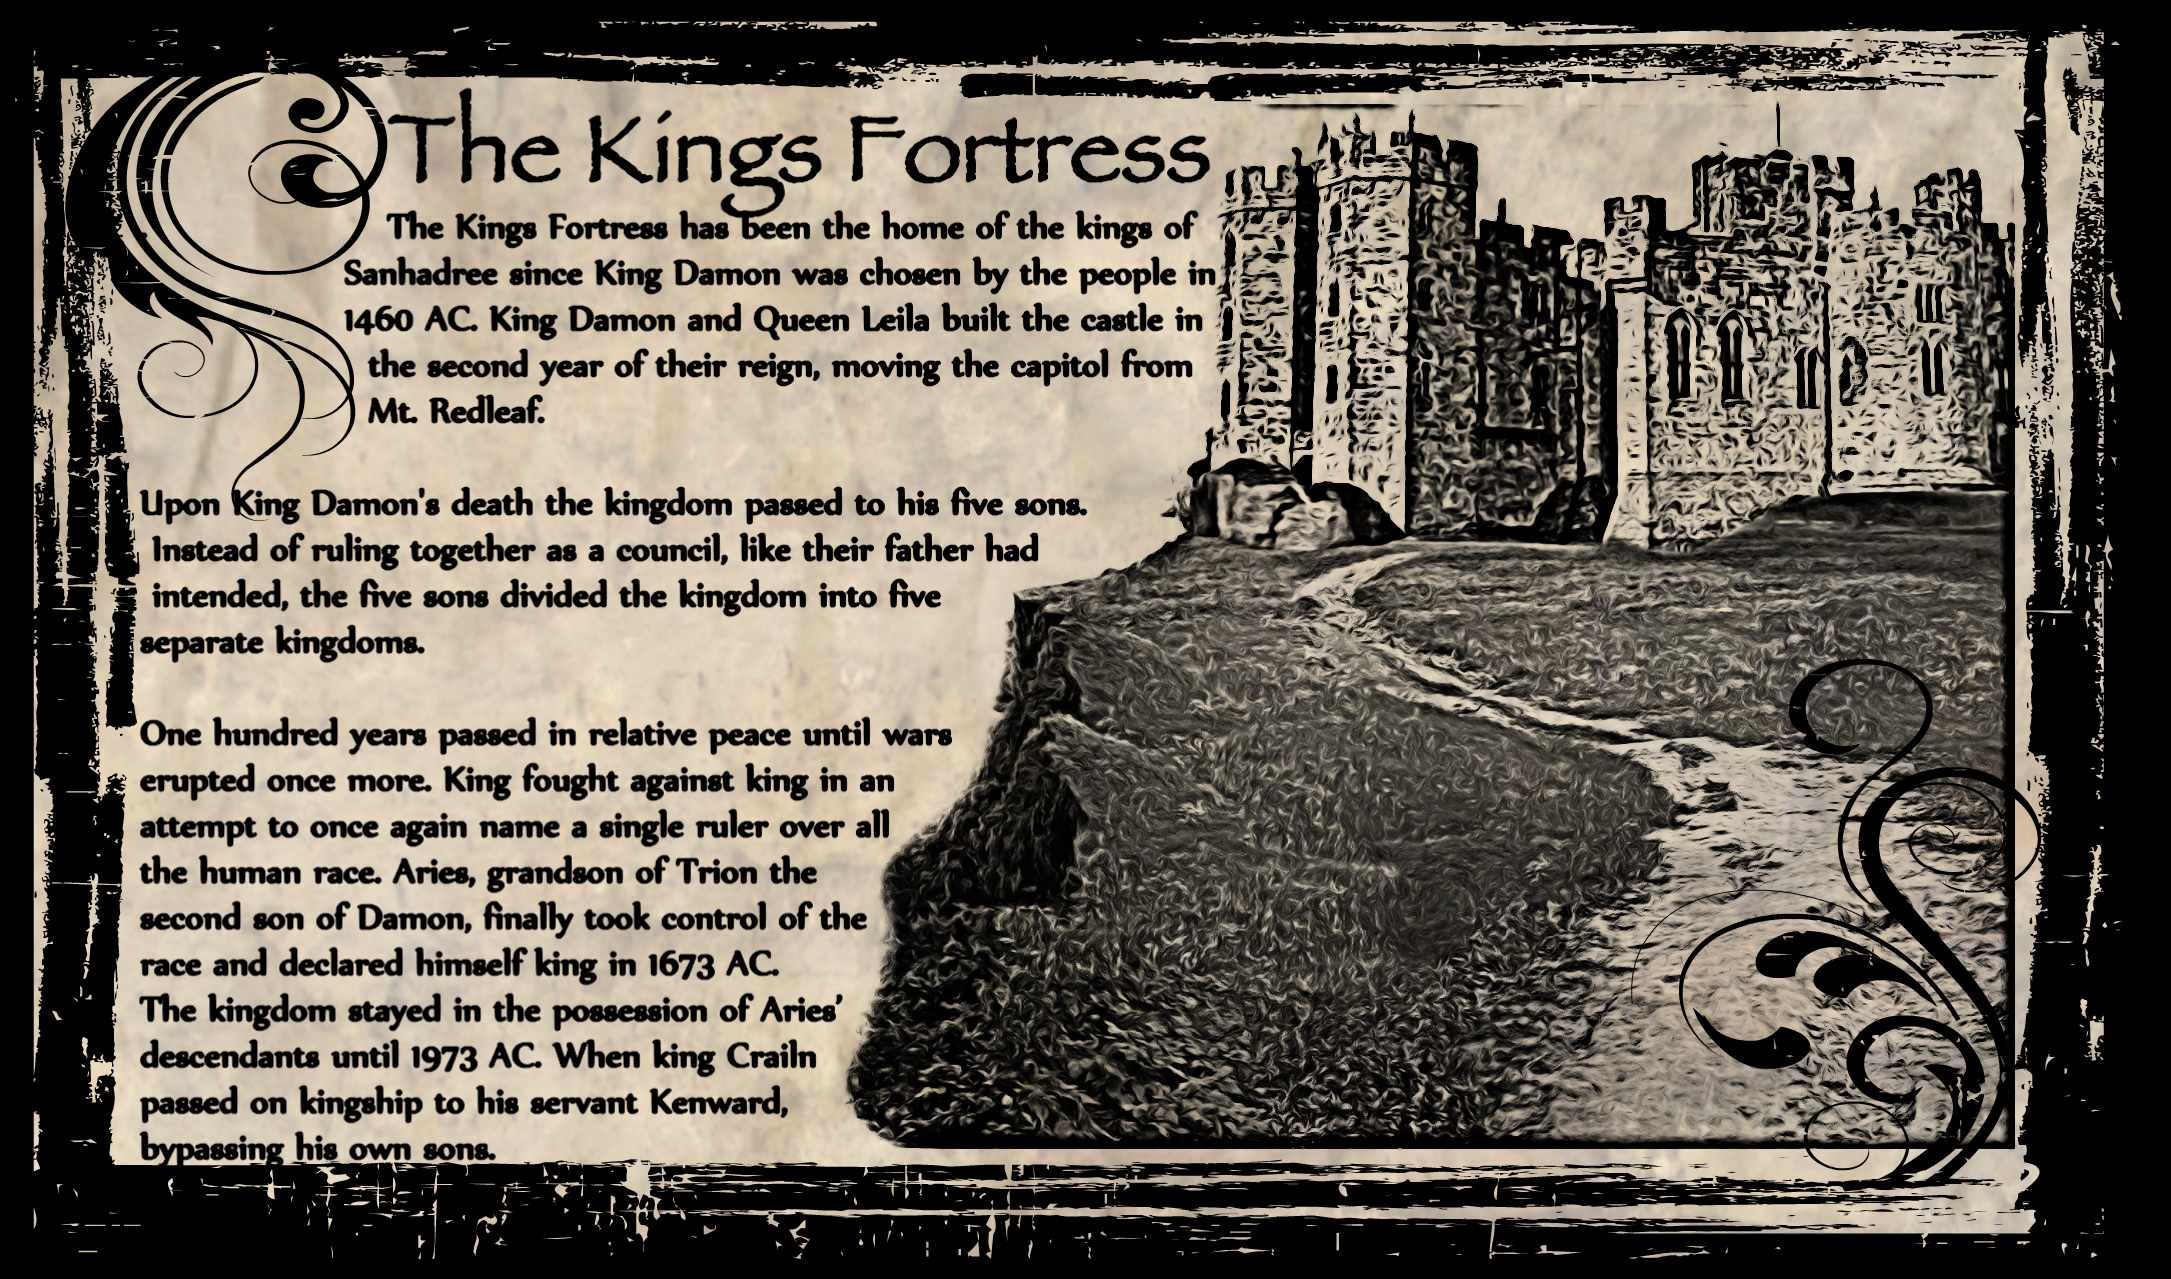 The Kings Fortress